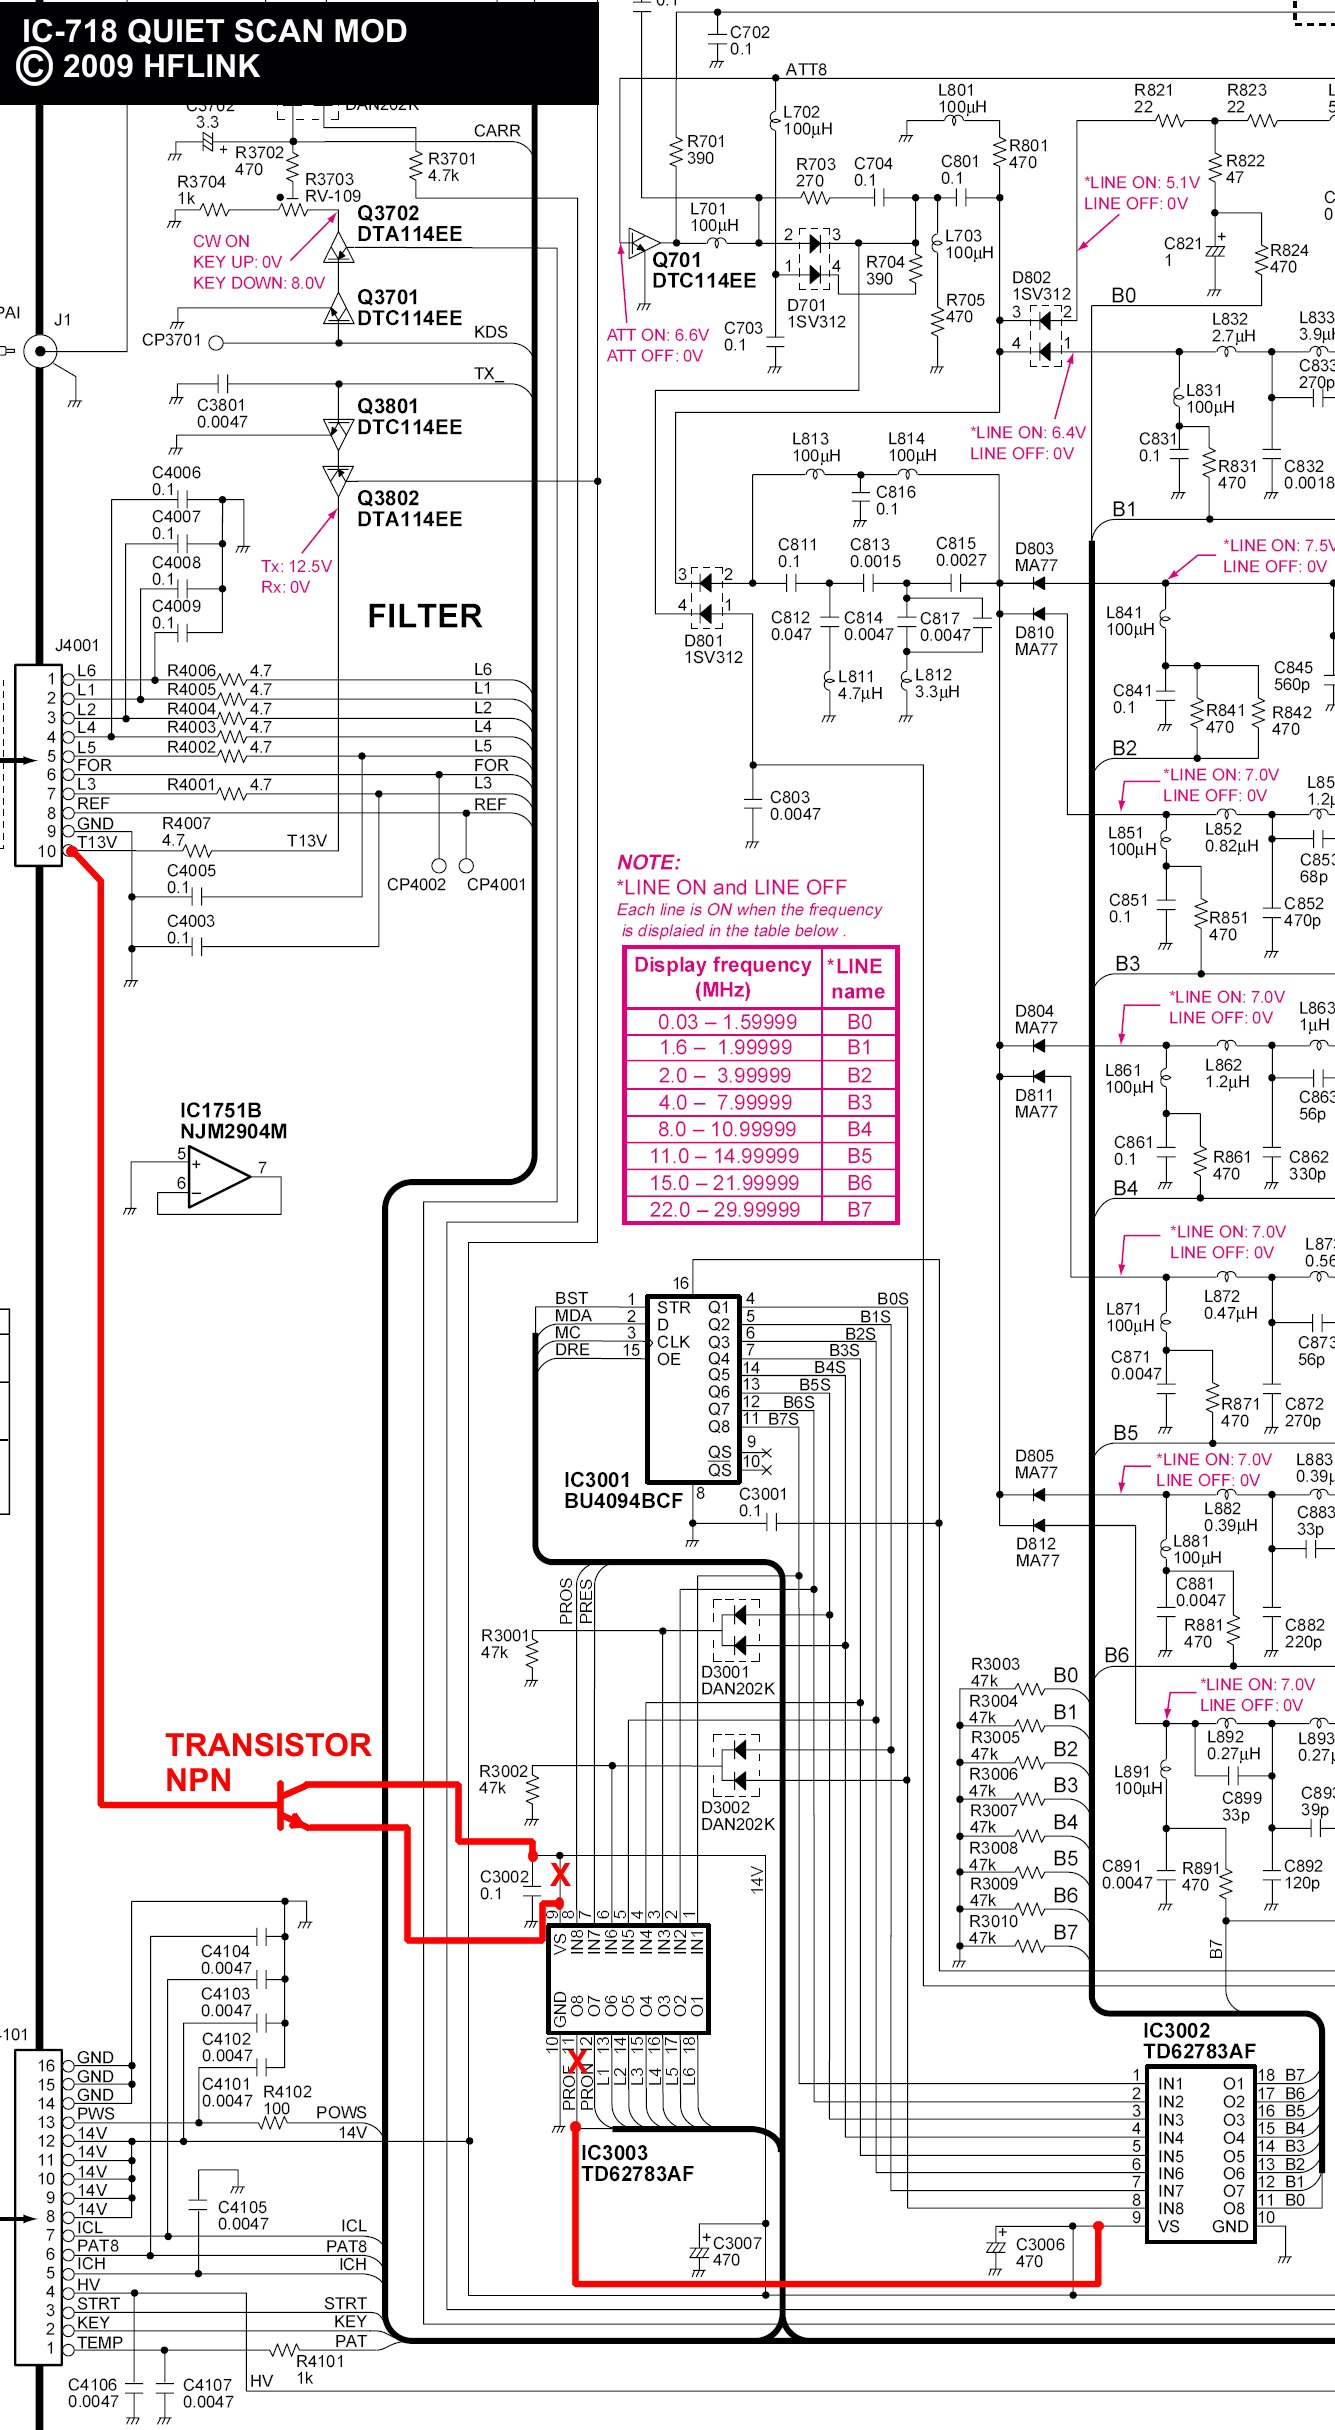 IC-718 Quiet Scan Mod Schematic